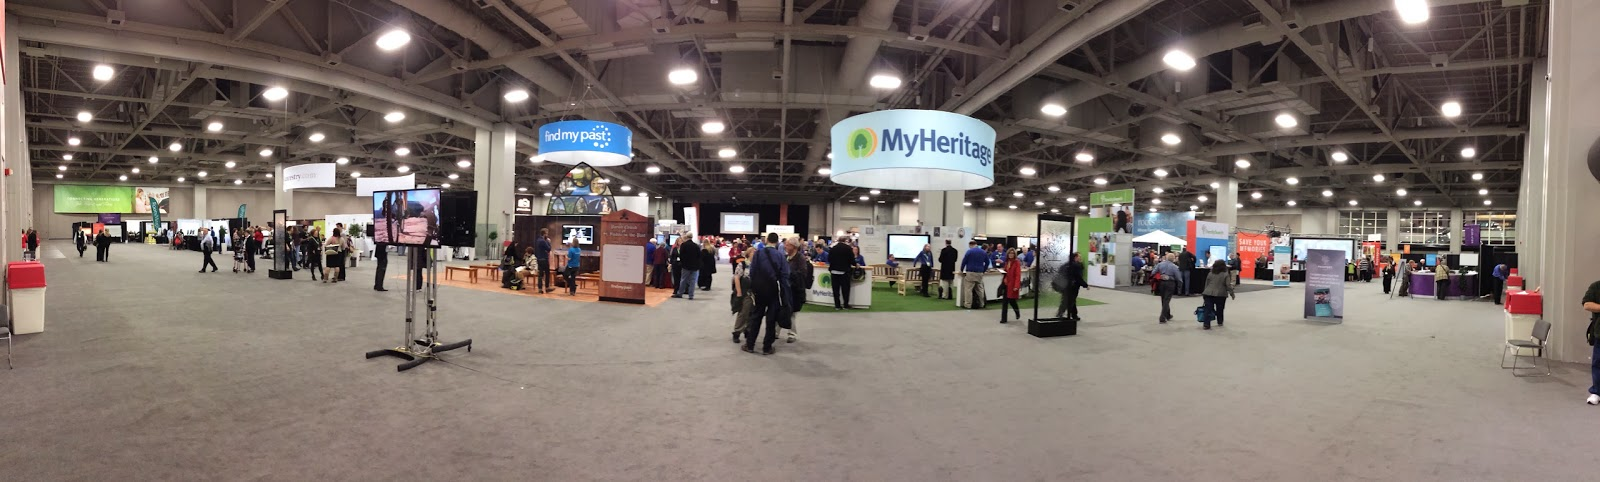 Panorama View of Expo Hall from the Front Entrance